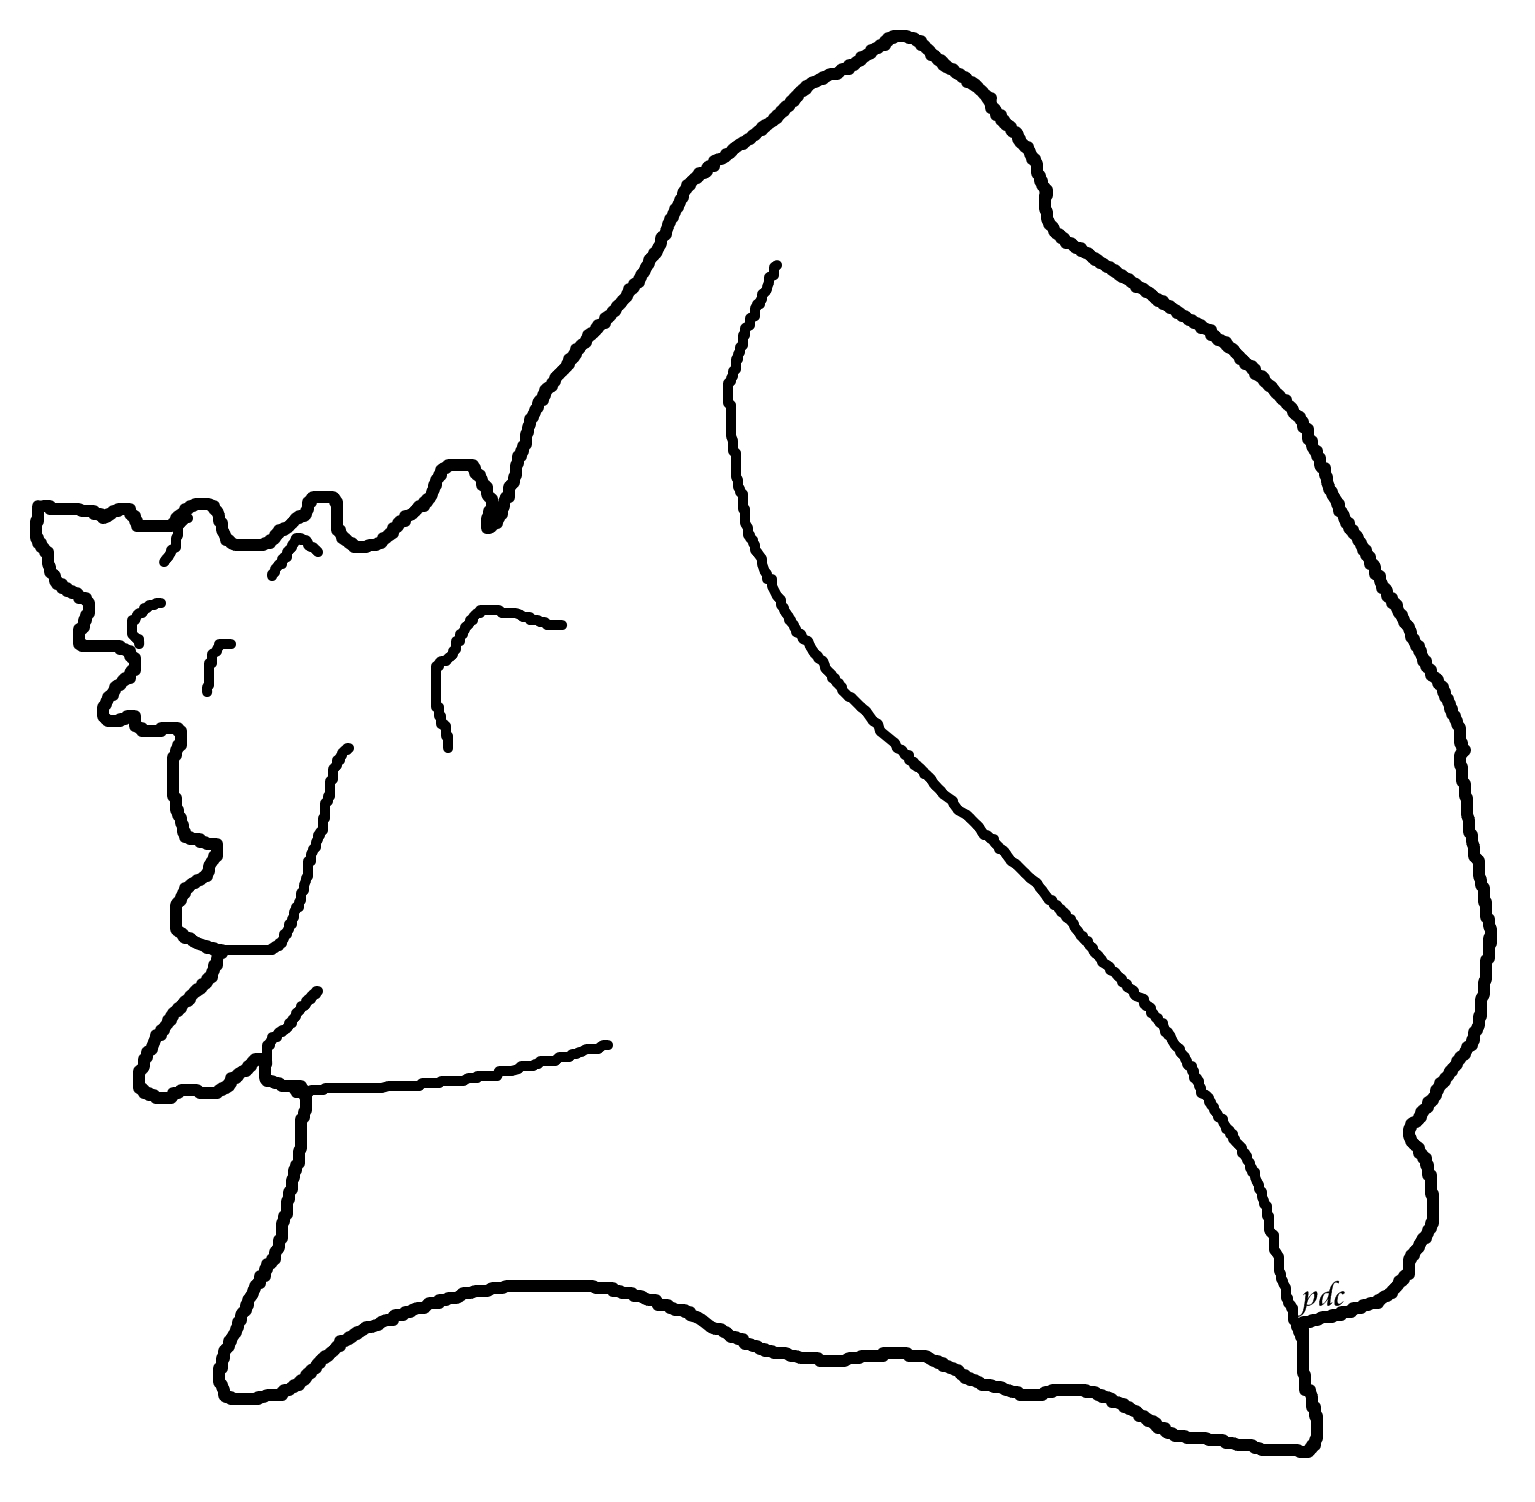 Drawn shell queen conch Or Page how or draw